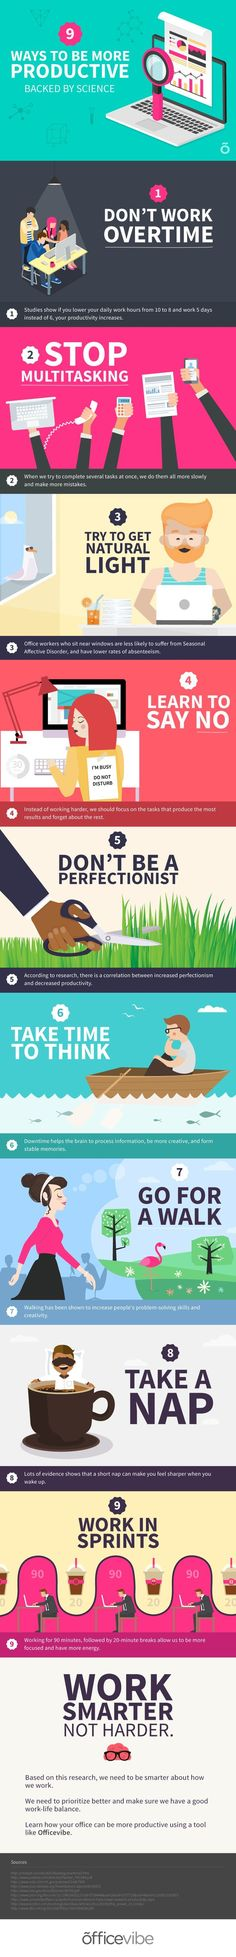 How To Be More Productive At Work; Backed By Science [INFOGRAPHIC] (scheduled via http://www.tailwindapp.com?utm_source=pinterest&utm_medium=twpin&utm_content=post123960431&utm_campaign=scheduler_attribution)